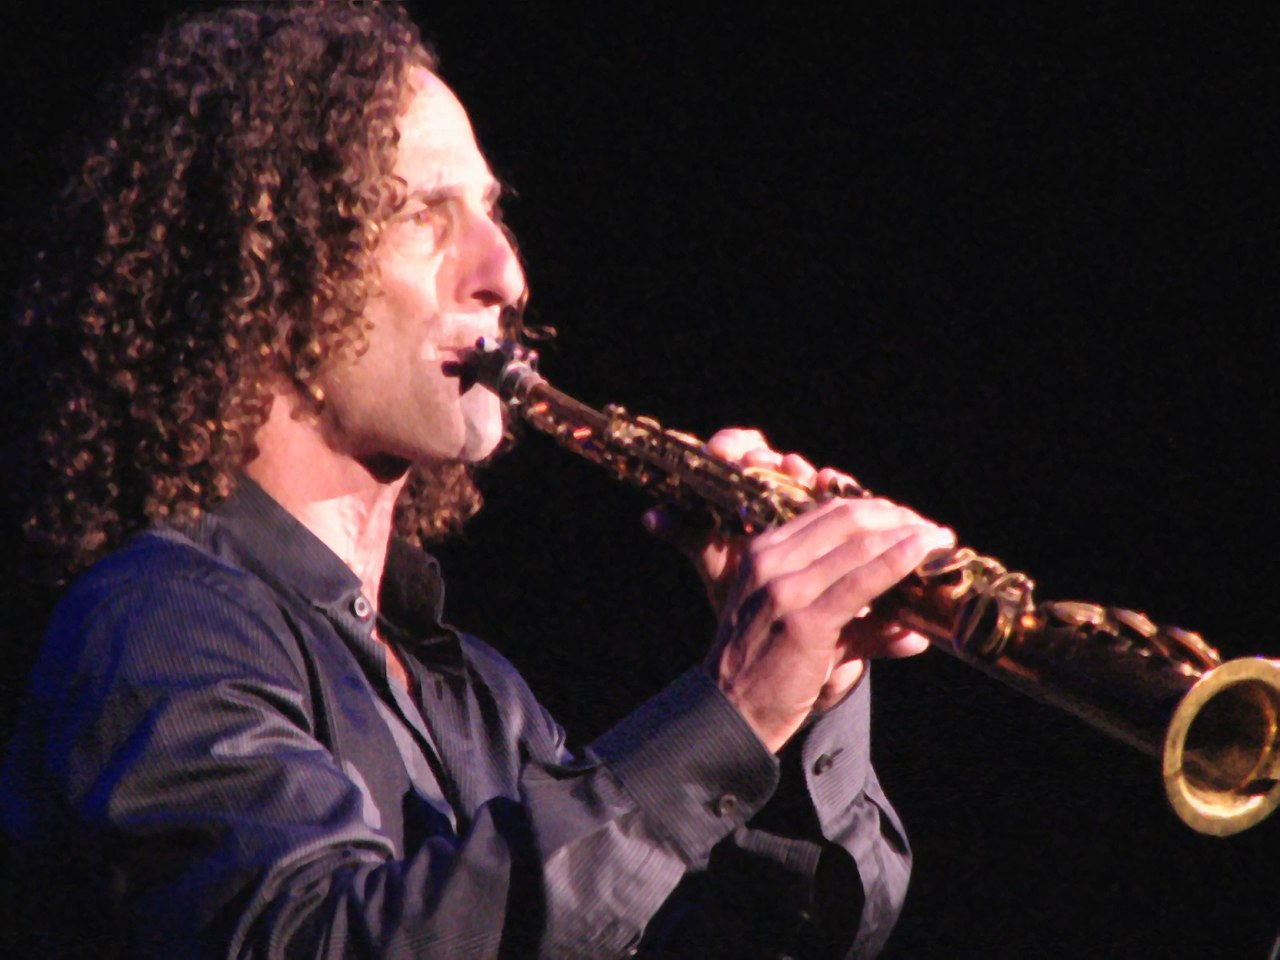 Fallece en accidente el famoso saxofonista Kenny G